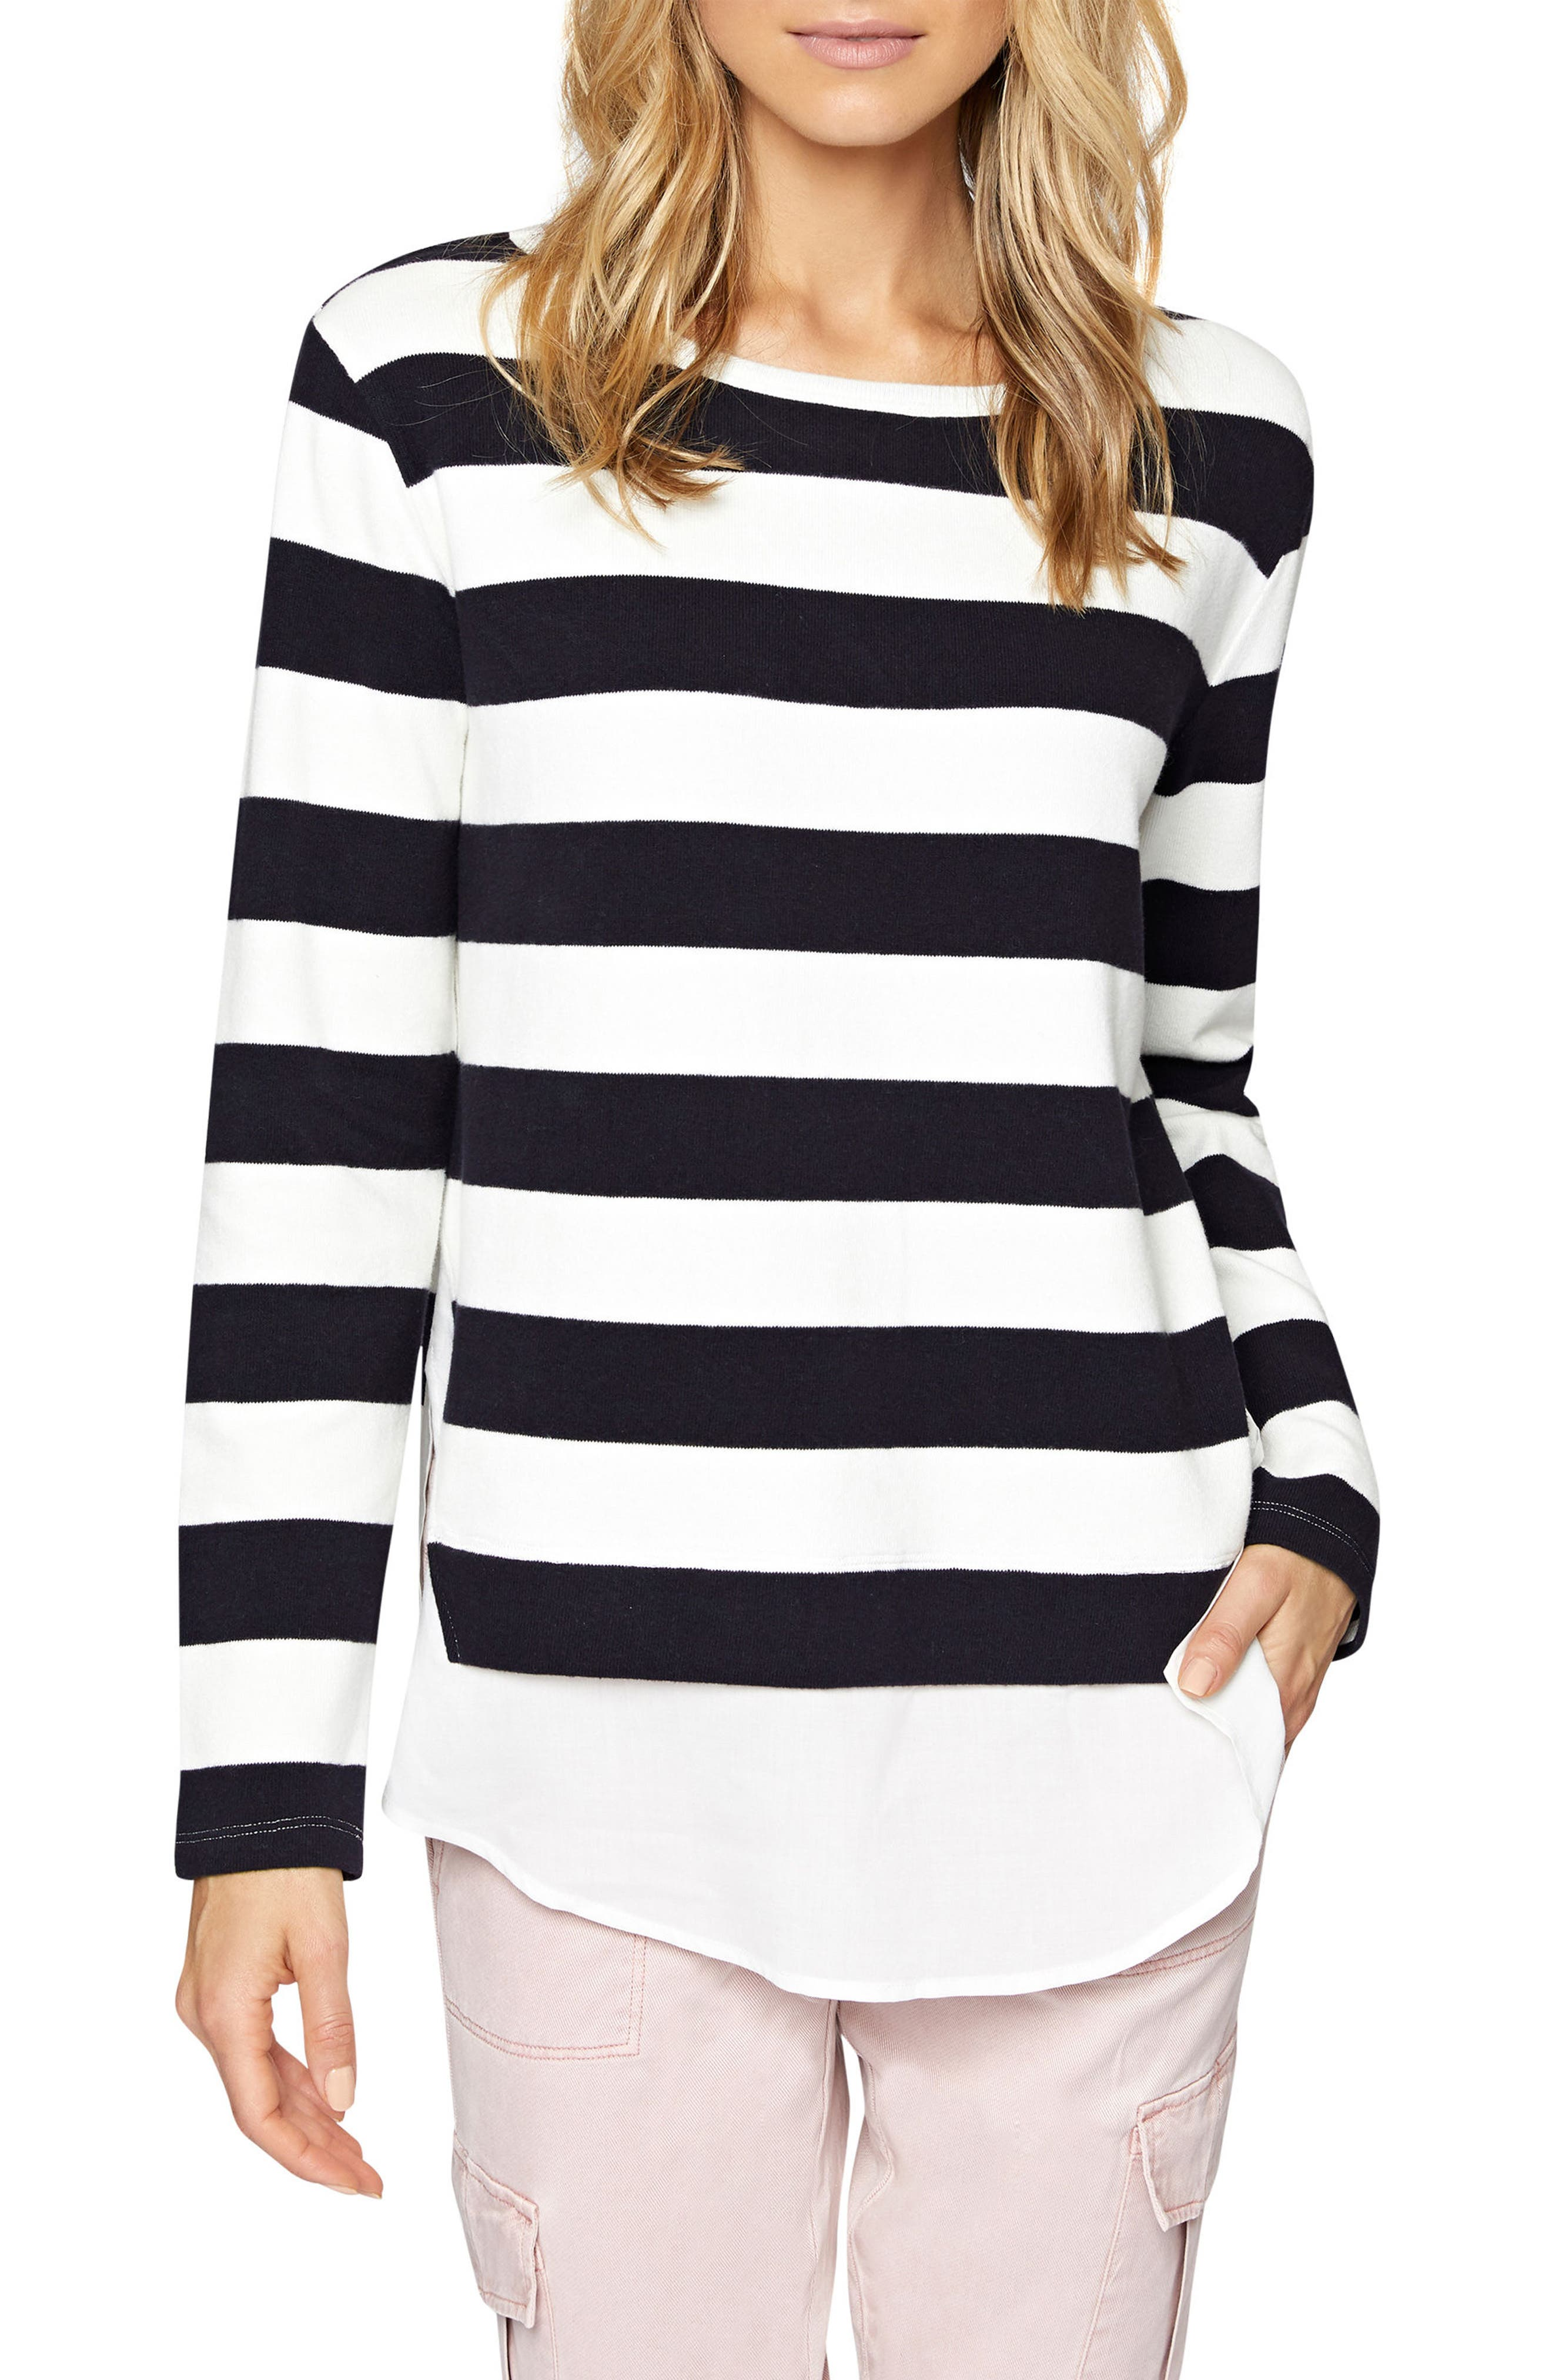 Main Image - Sanctuary Layered Look Stripe Sweater